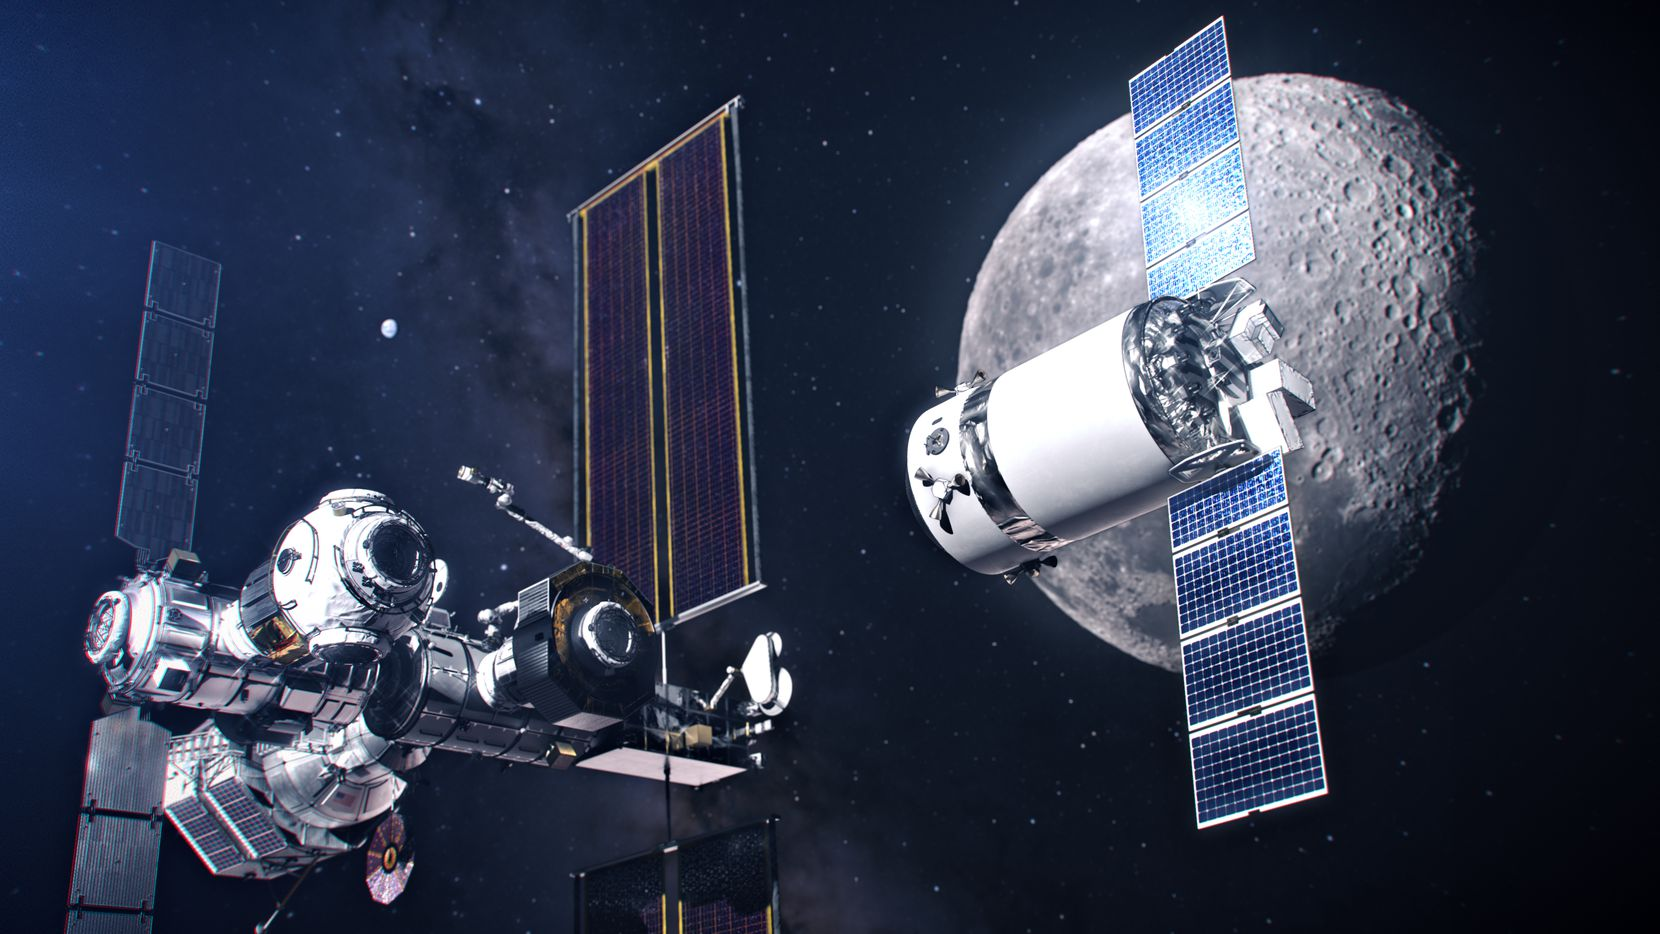 With its Artemis missions, NASA will land the first woman and first person of color on the moon.